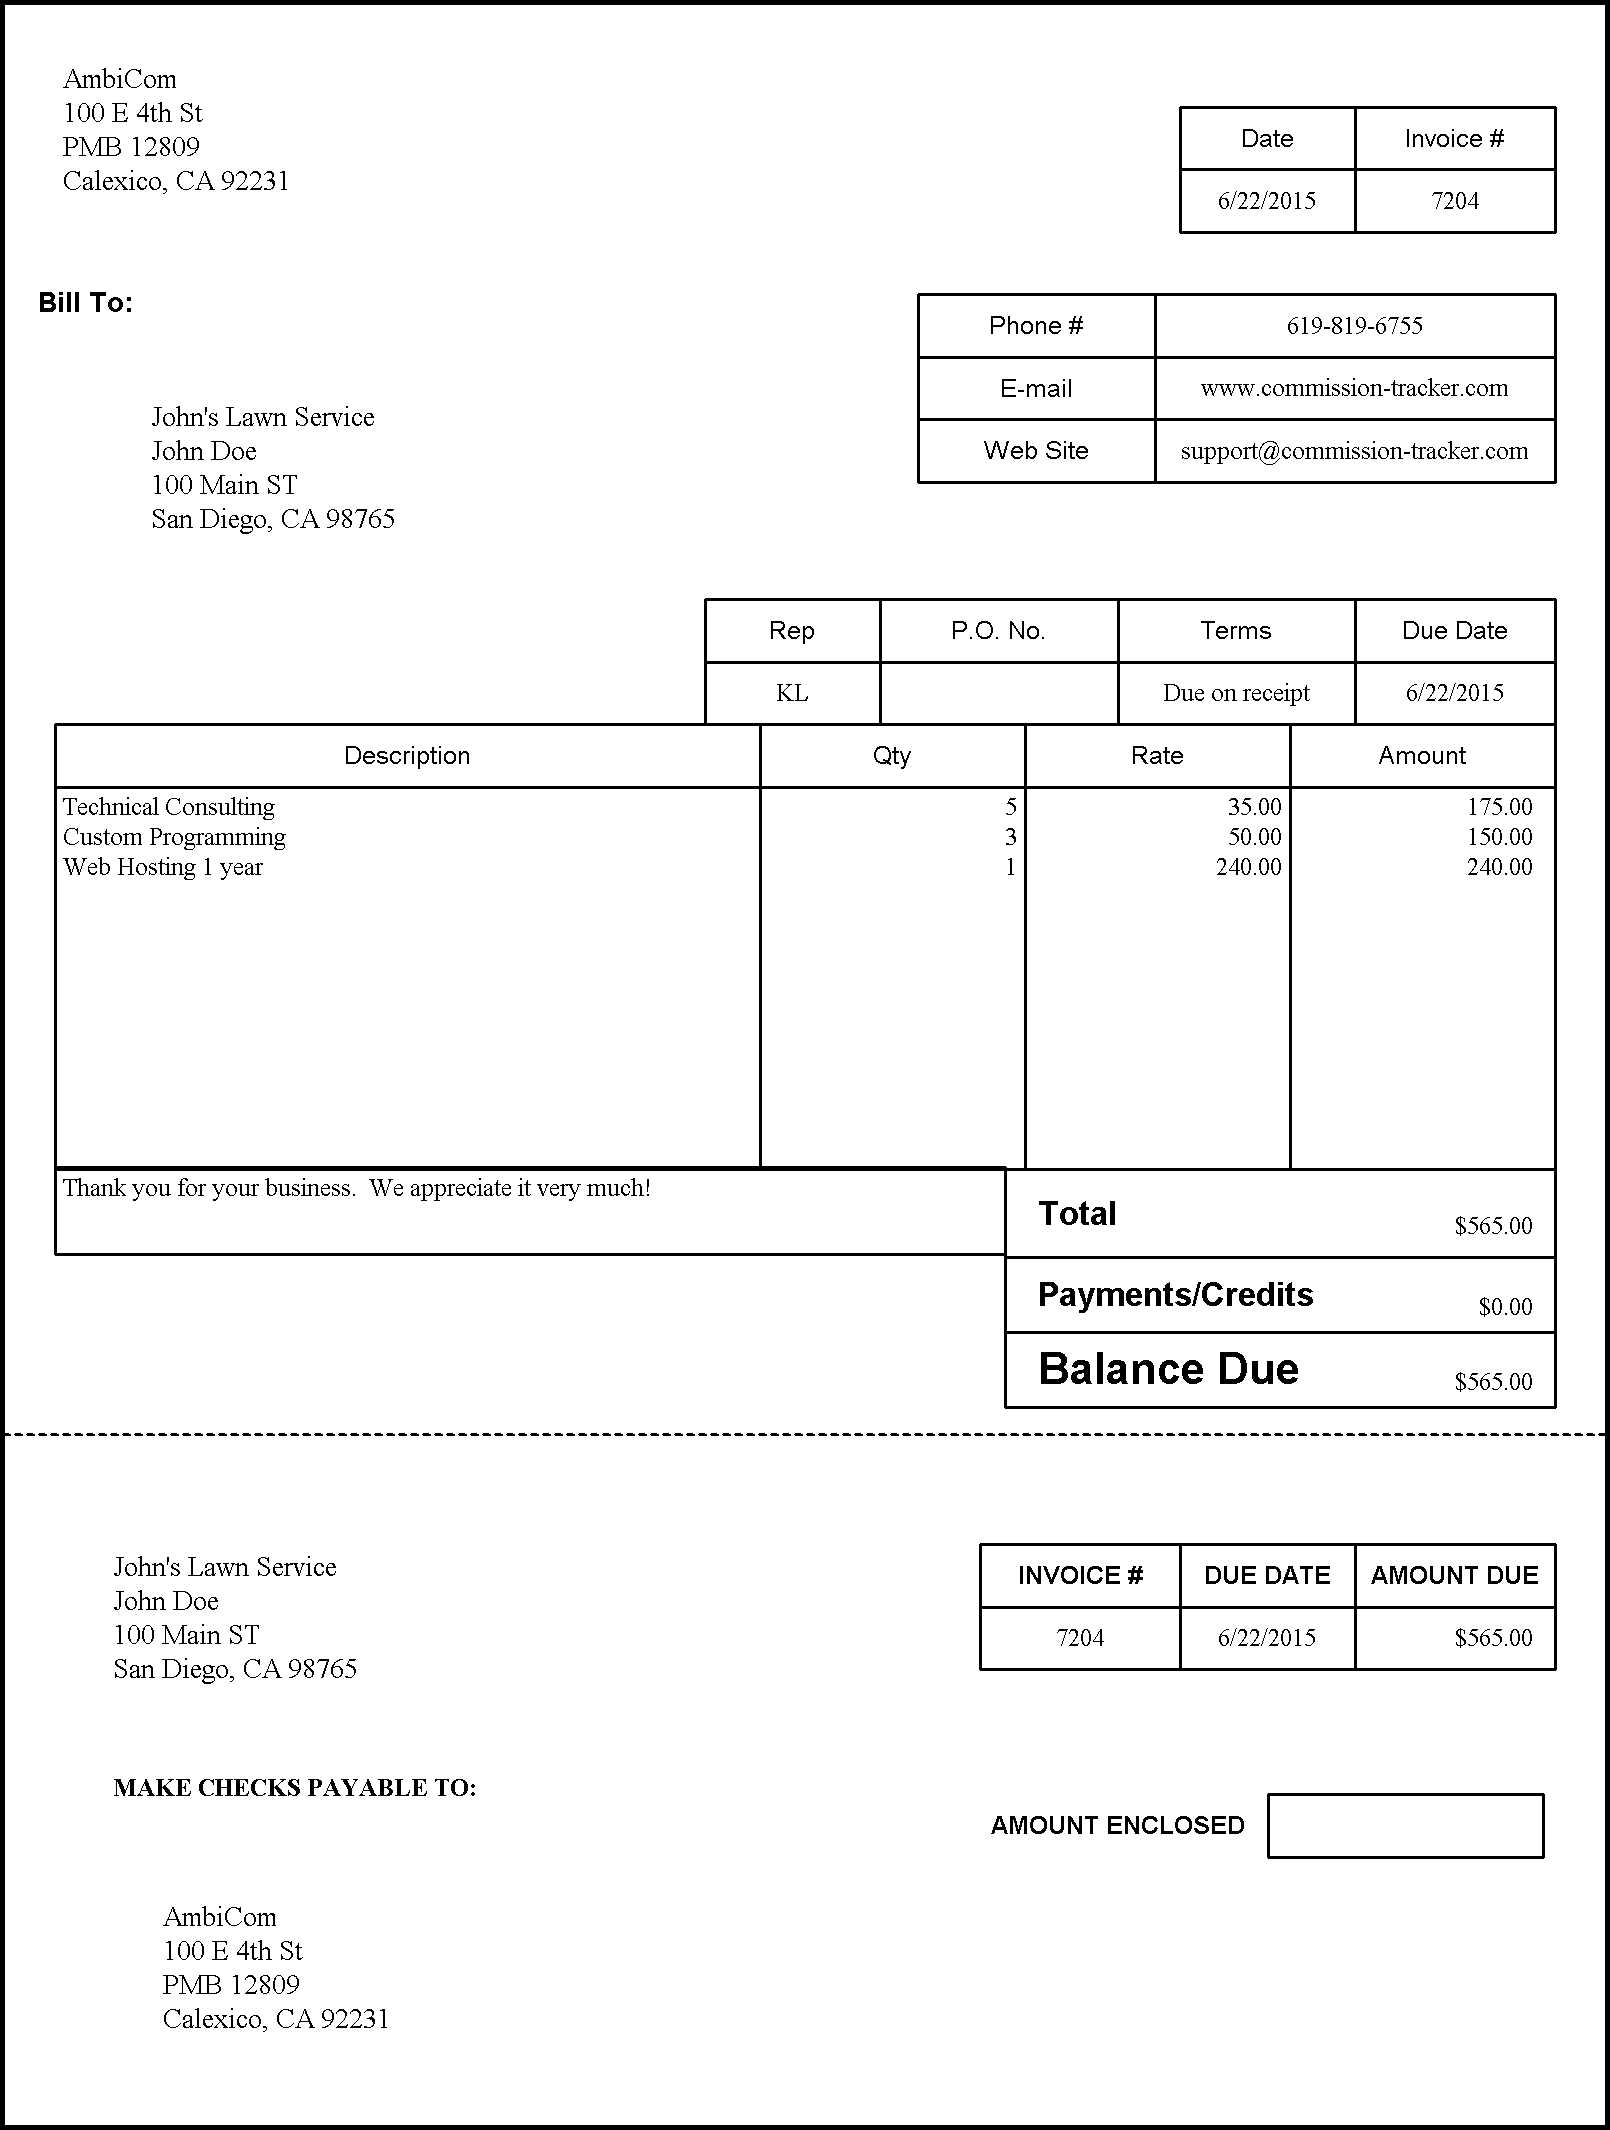 Quickbooks Invoice Sample and 100 Quickbooks Change Invoice Template On An Invoice In Qbo if